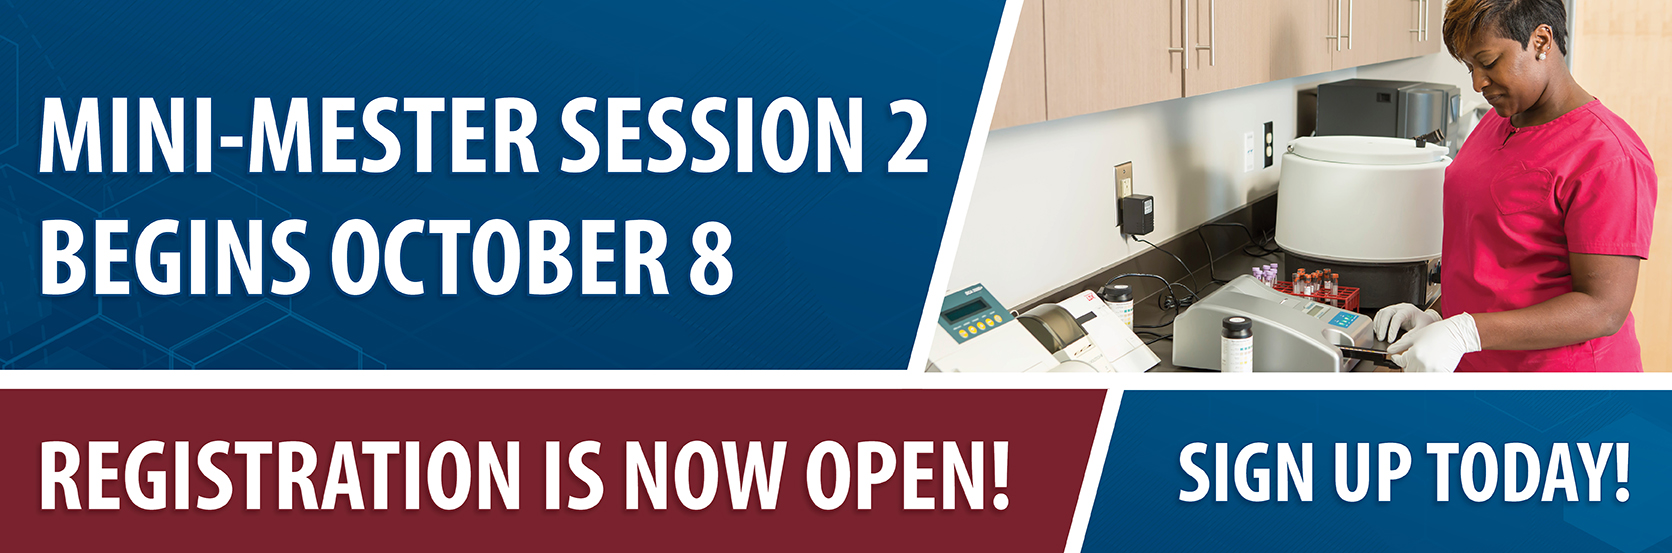 Registration for fall mini-mester is now open. Fall Mini-Mester Starts October 8